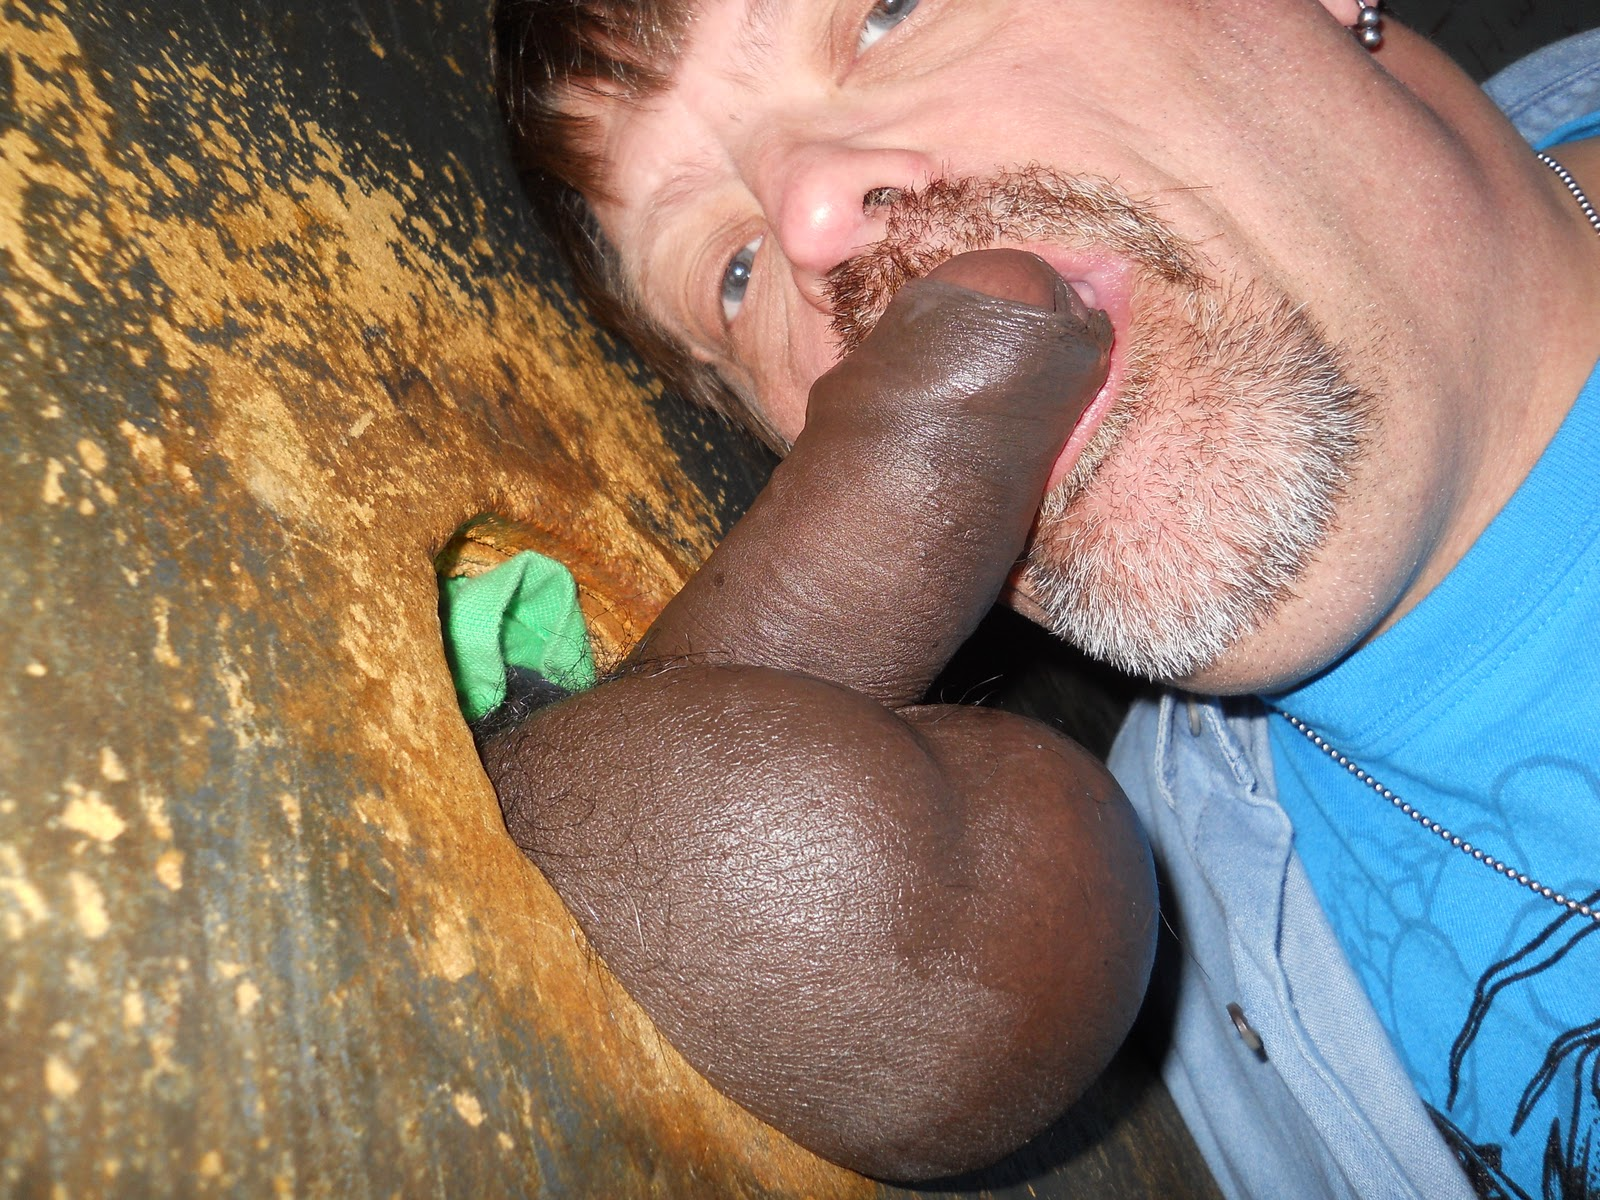 Cock balls black big and